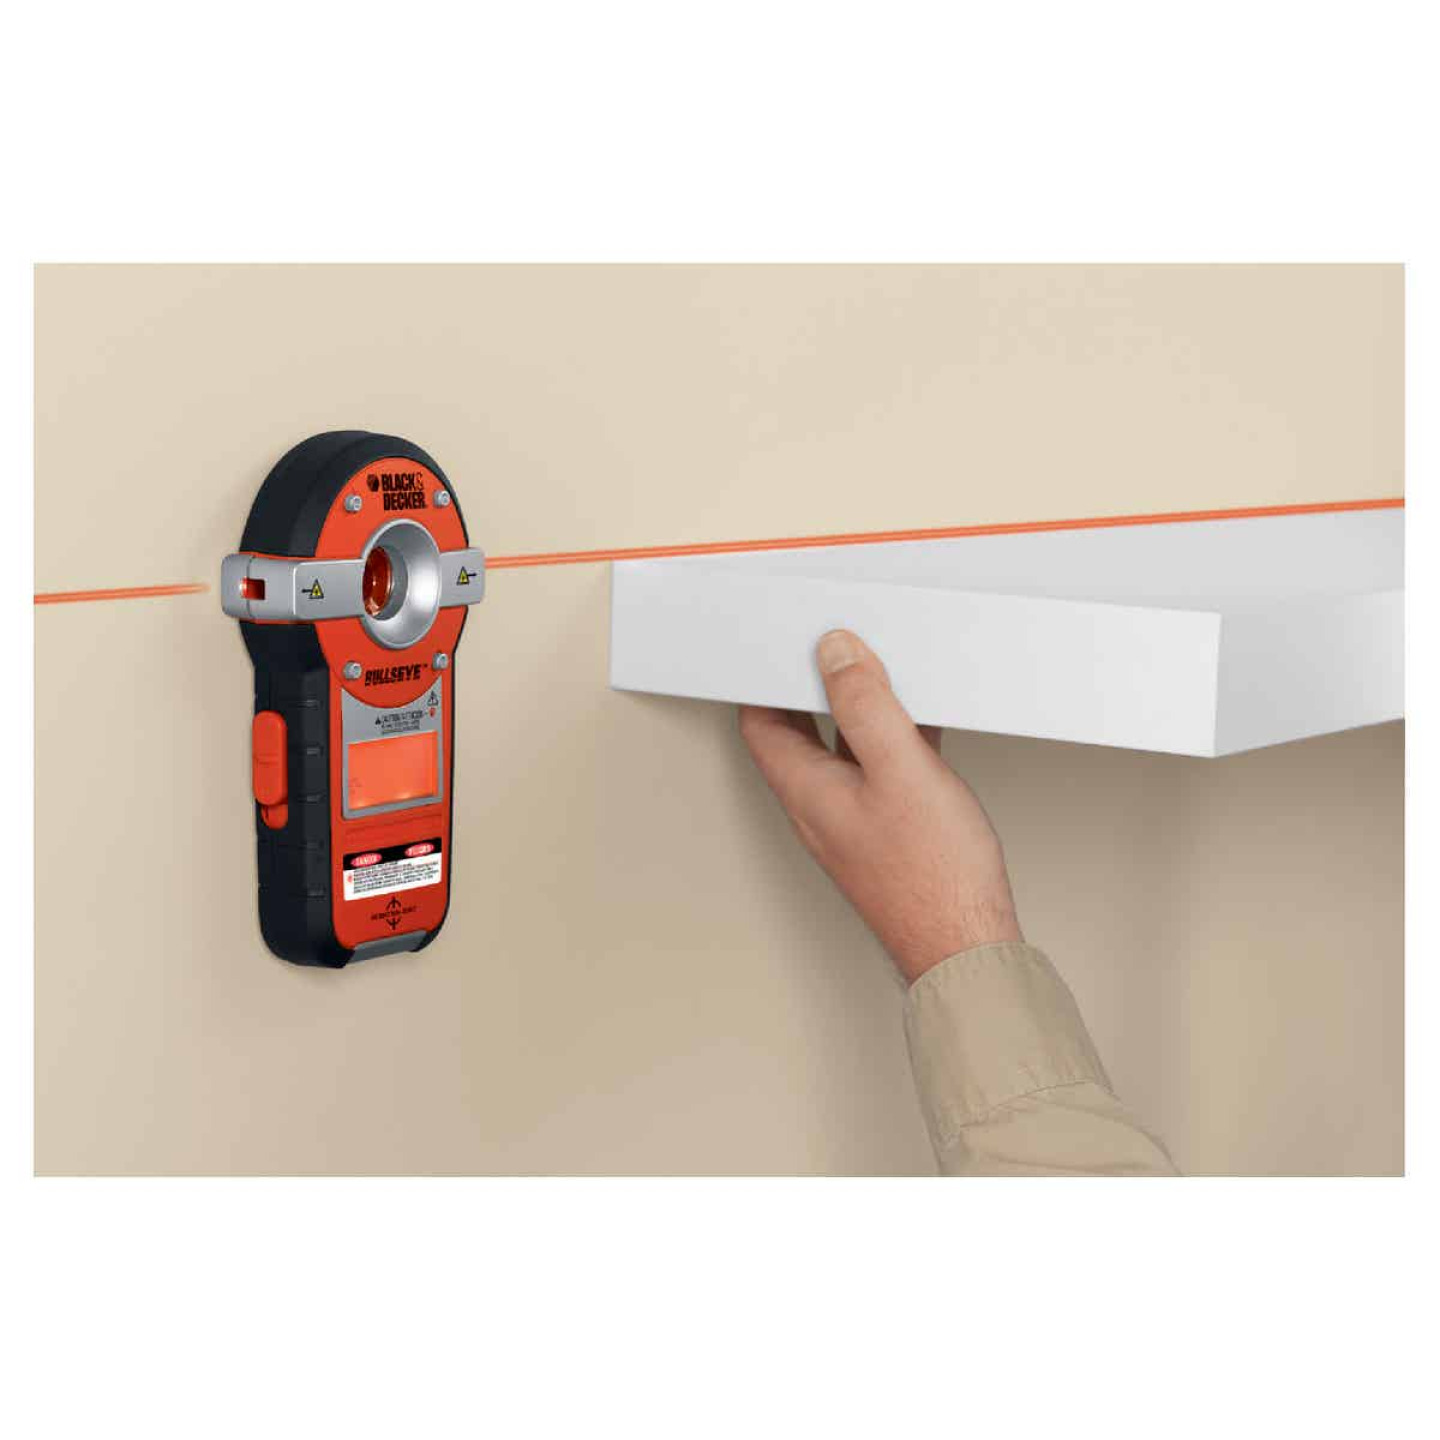 Black & Decker Bullseye 20 Ft. Self-Leveling Line Laser Level with Stud Sensor Image 2